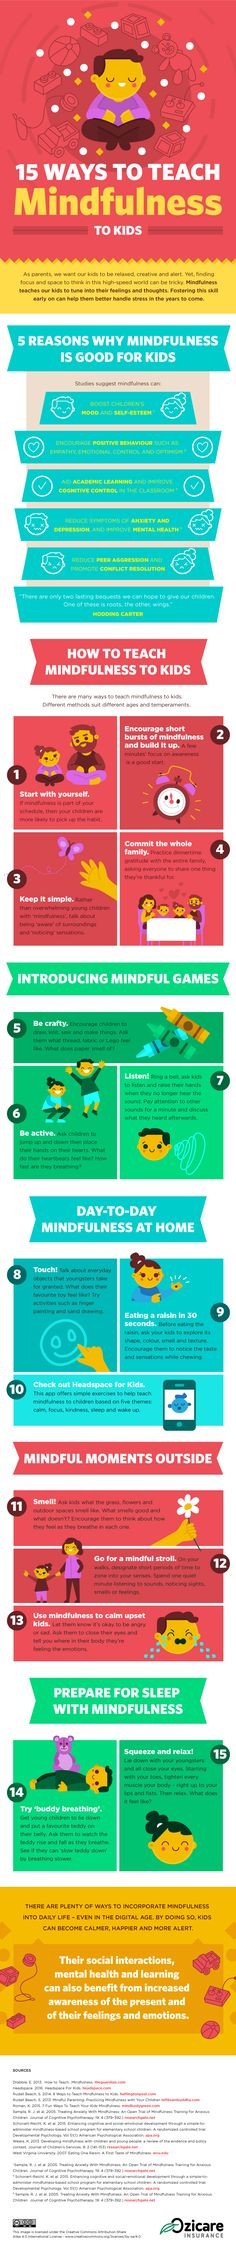 15 Fantastic Ways to Teach Mindfulness to Kids is part of Mindfulness for kids - Children who practice mindfulness have better moods and have higher selfesteem Here are 15 mindfulness activities for kids Mindfulness For Kids, Mindfulness Activities, Teaching Mindfulness, Mindfulness Training, Coping Skills, Social Skills, Social Work, Chico Yoga, Social Emotional Learning